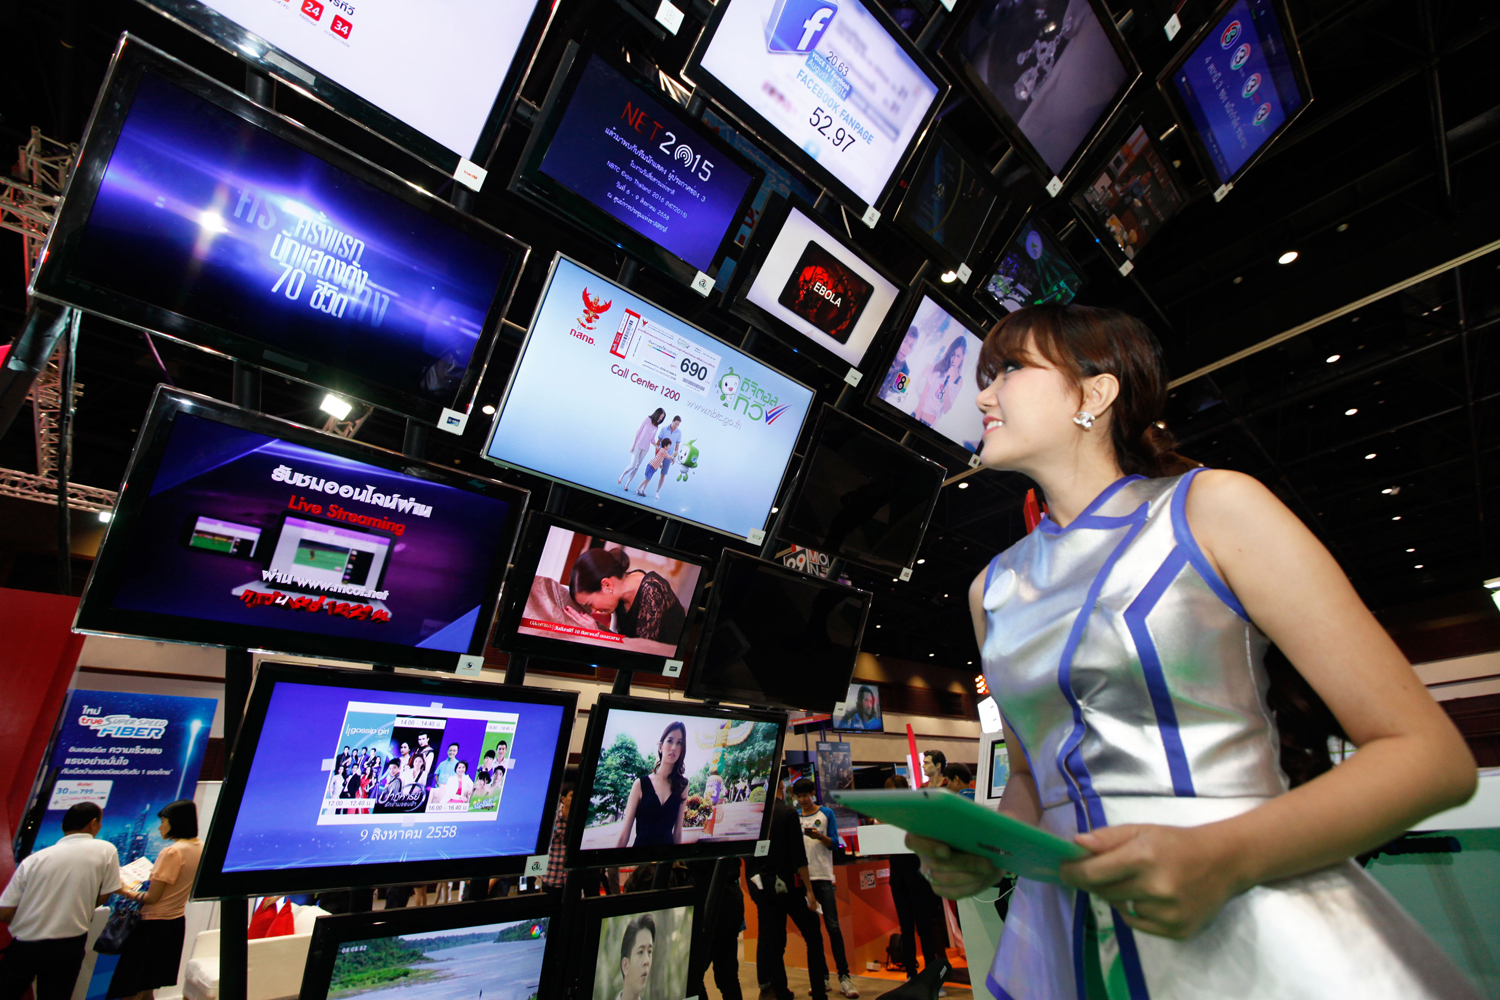 The state has earned slightly less than half of the 51 billion baht it is due after holding an auction for 24 digital TV licences in 2013.